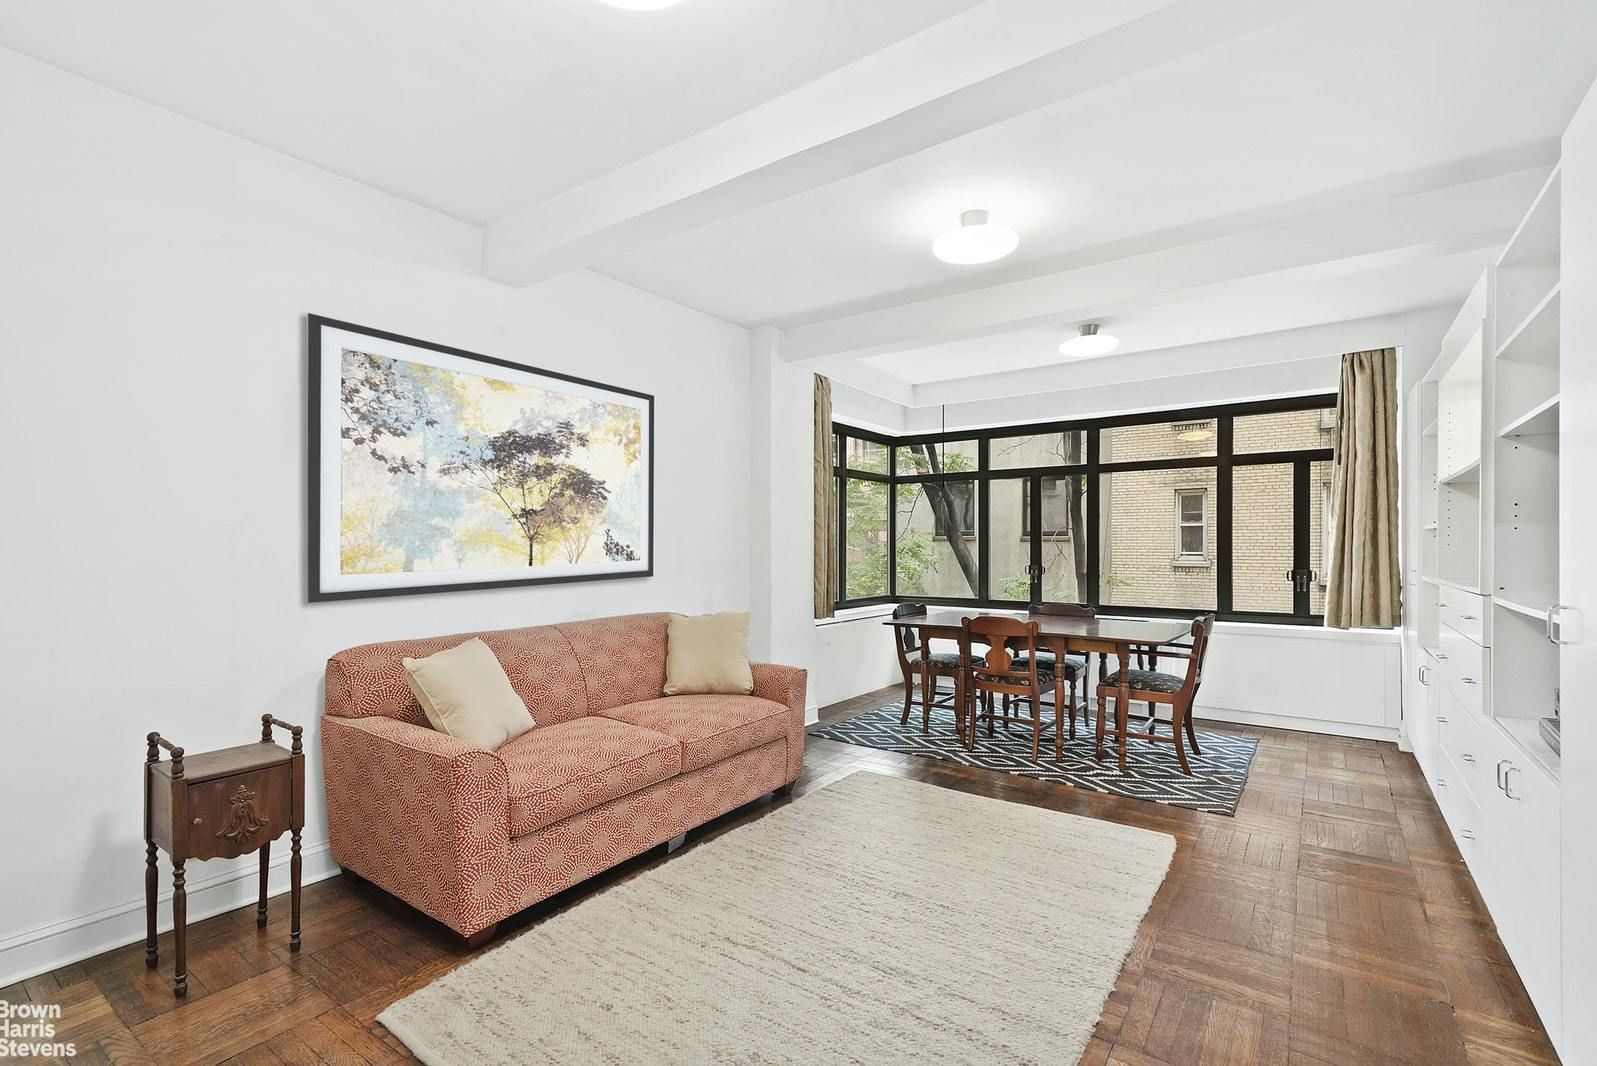 Apartment for sale at 25 West 54th Street, Apt 4A